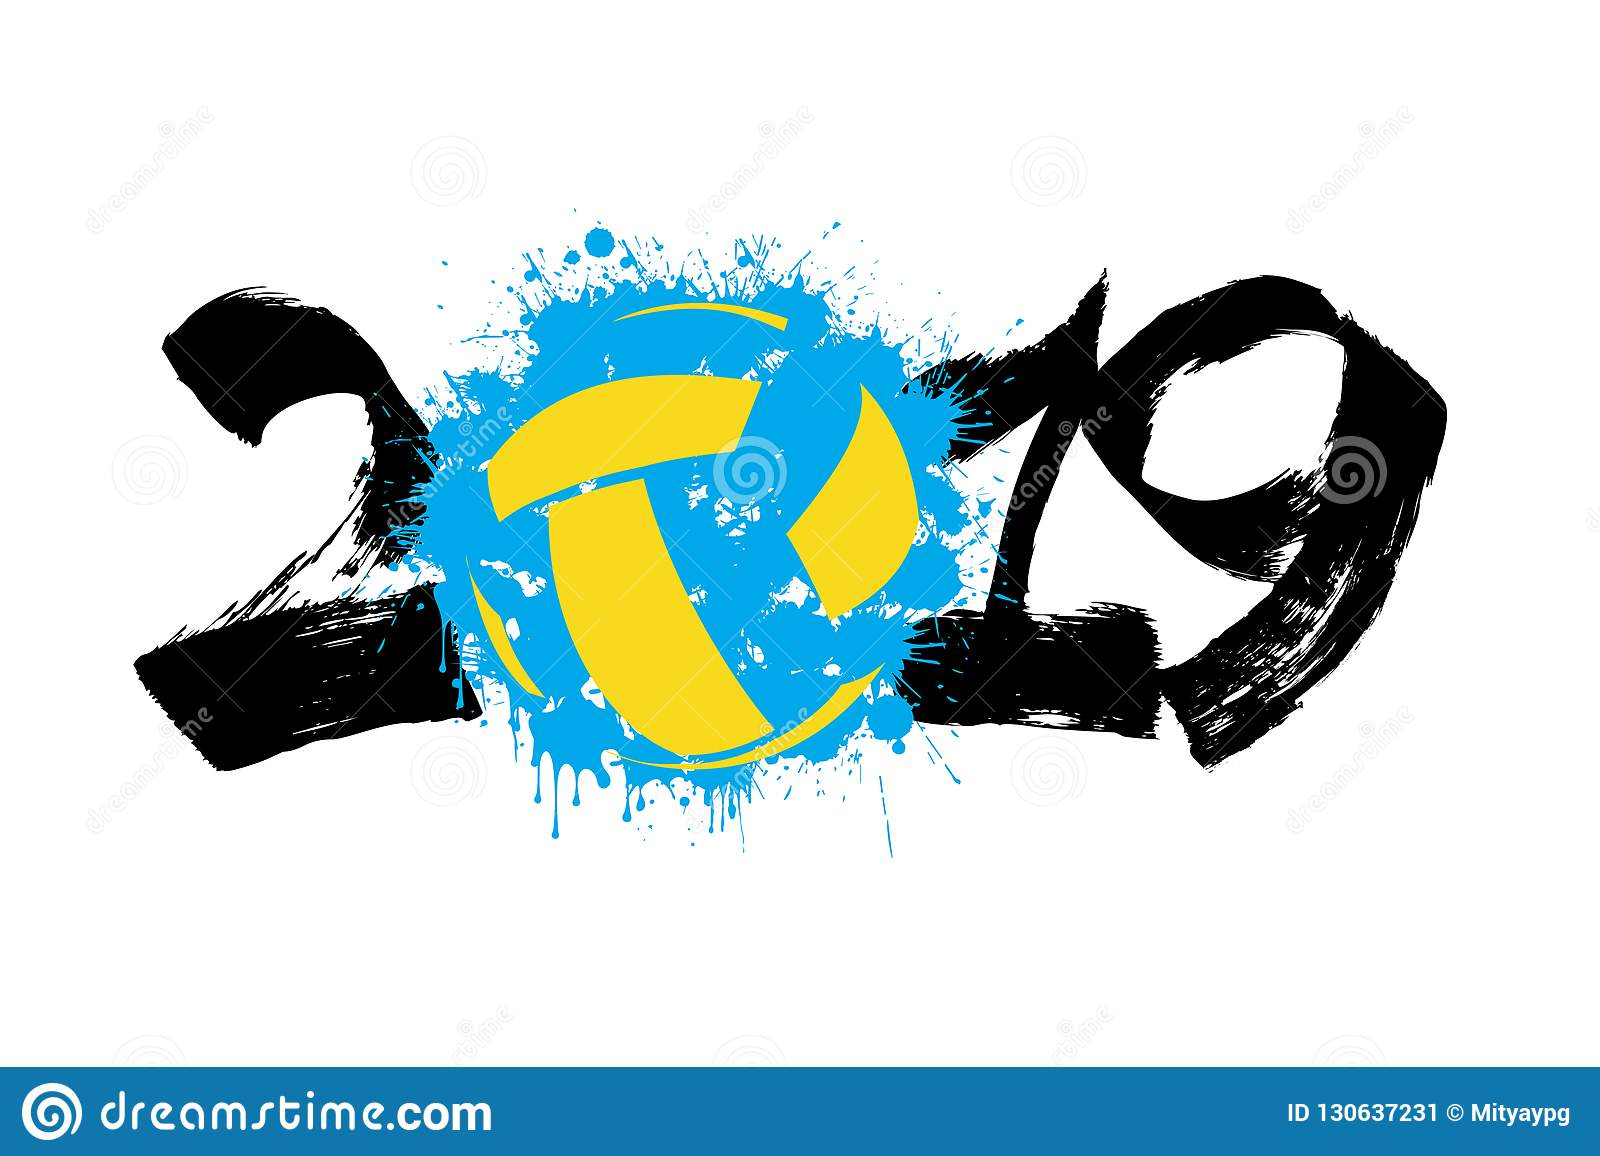 Abstract Grungy Background With Volleyball Arrowhead: Number 2019 And A Volleyball Ball From Blots Stock Vector